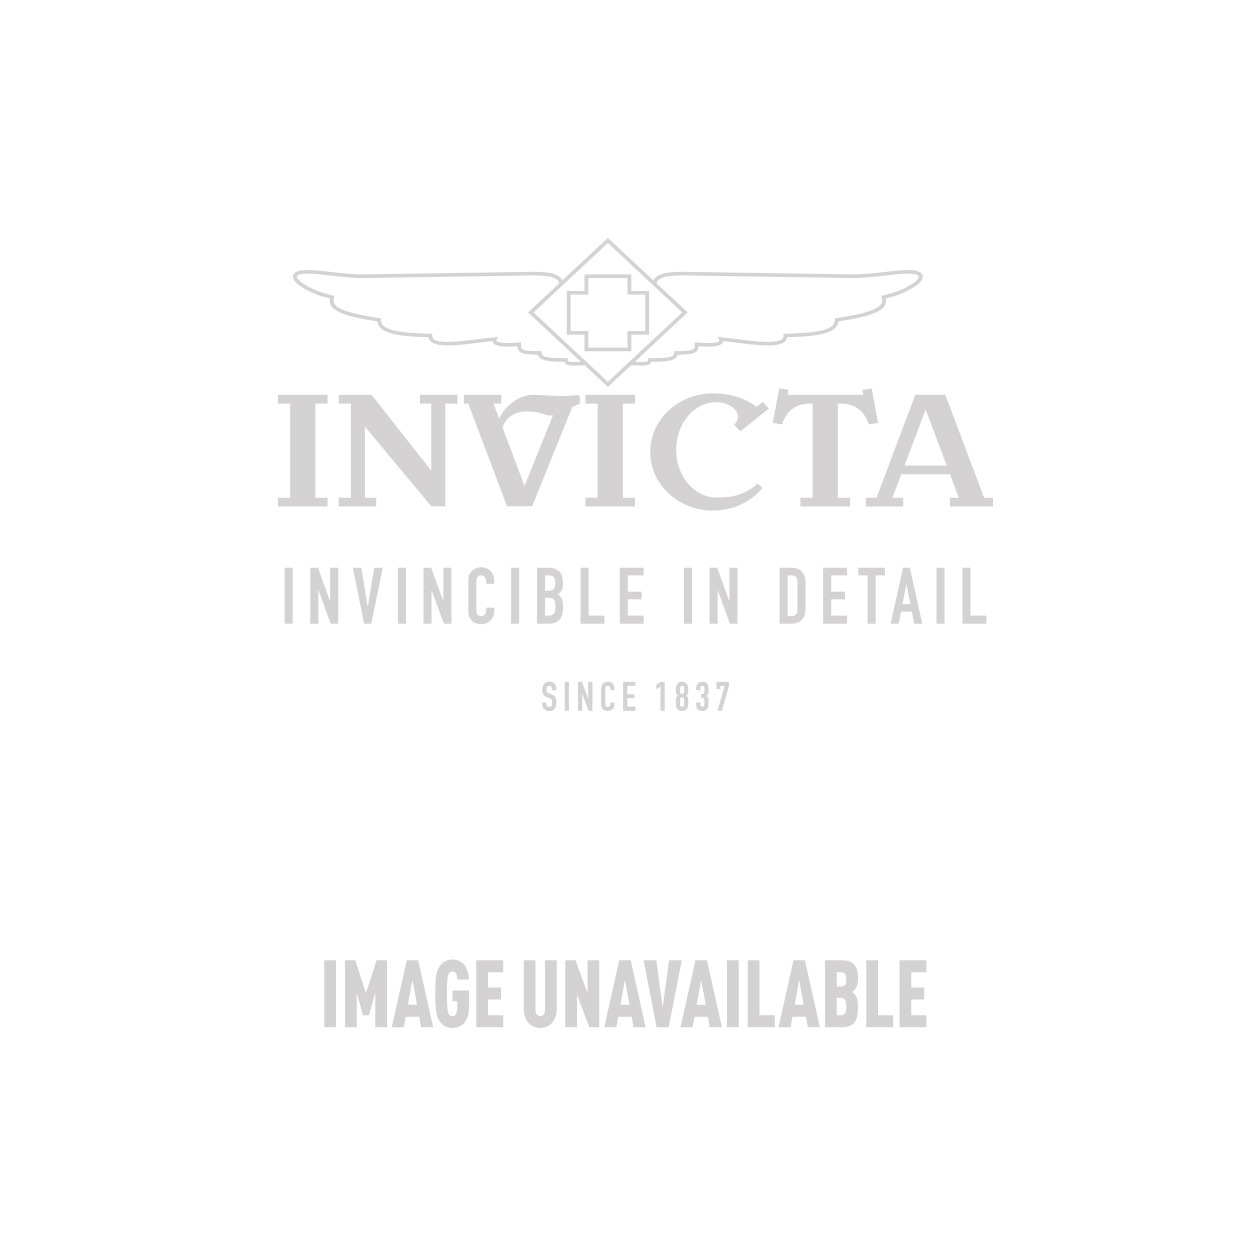 Invicta Bolt Swiss Made Quartz Watch - Gold, Stainless Steel case with Gold, Black tone Stainless Steel, Polyurethane band - Model 90023